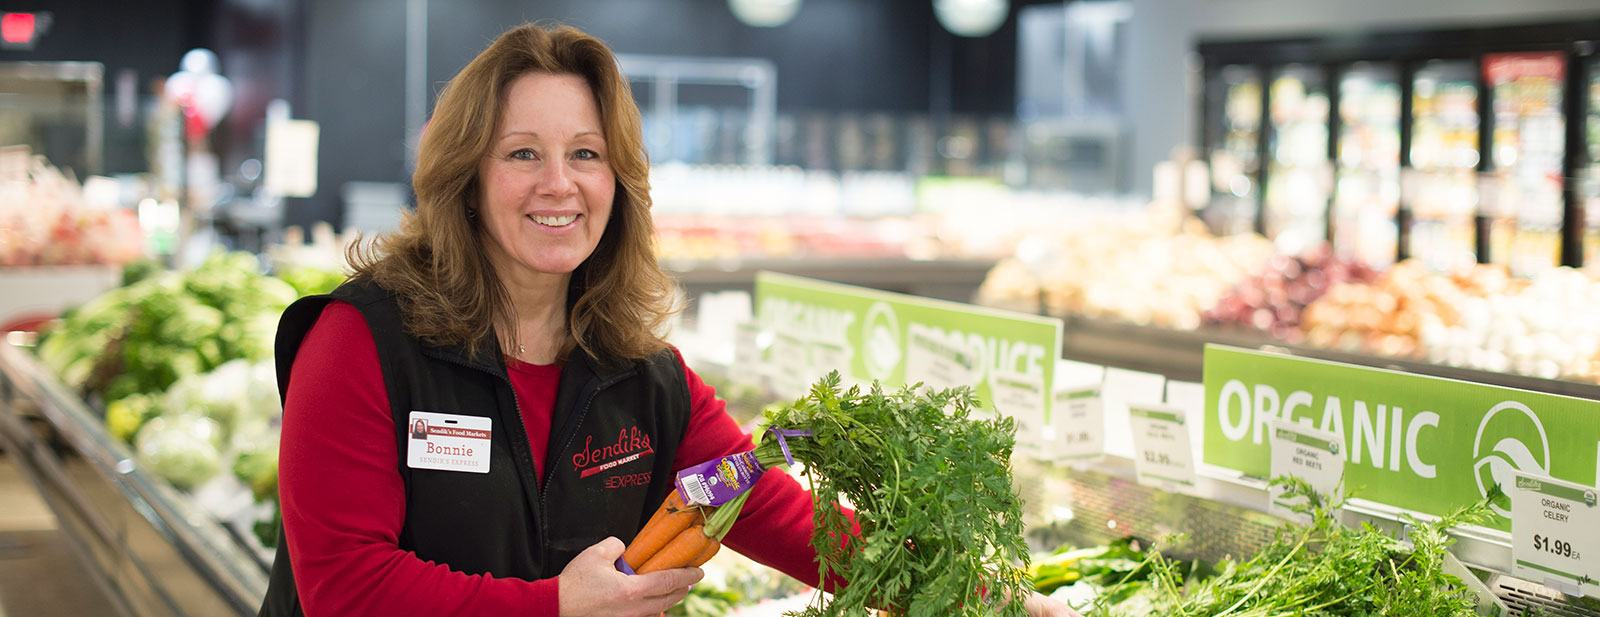 Personal Shopper with produce